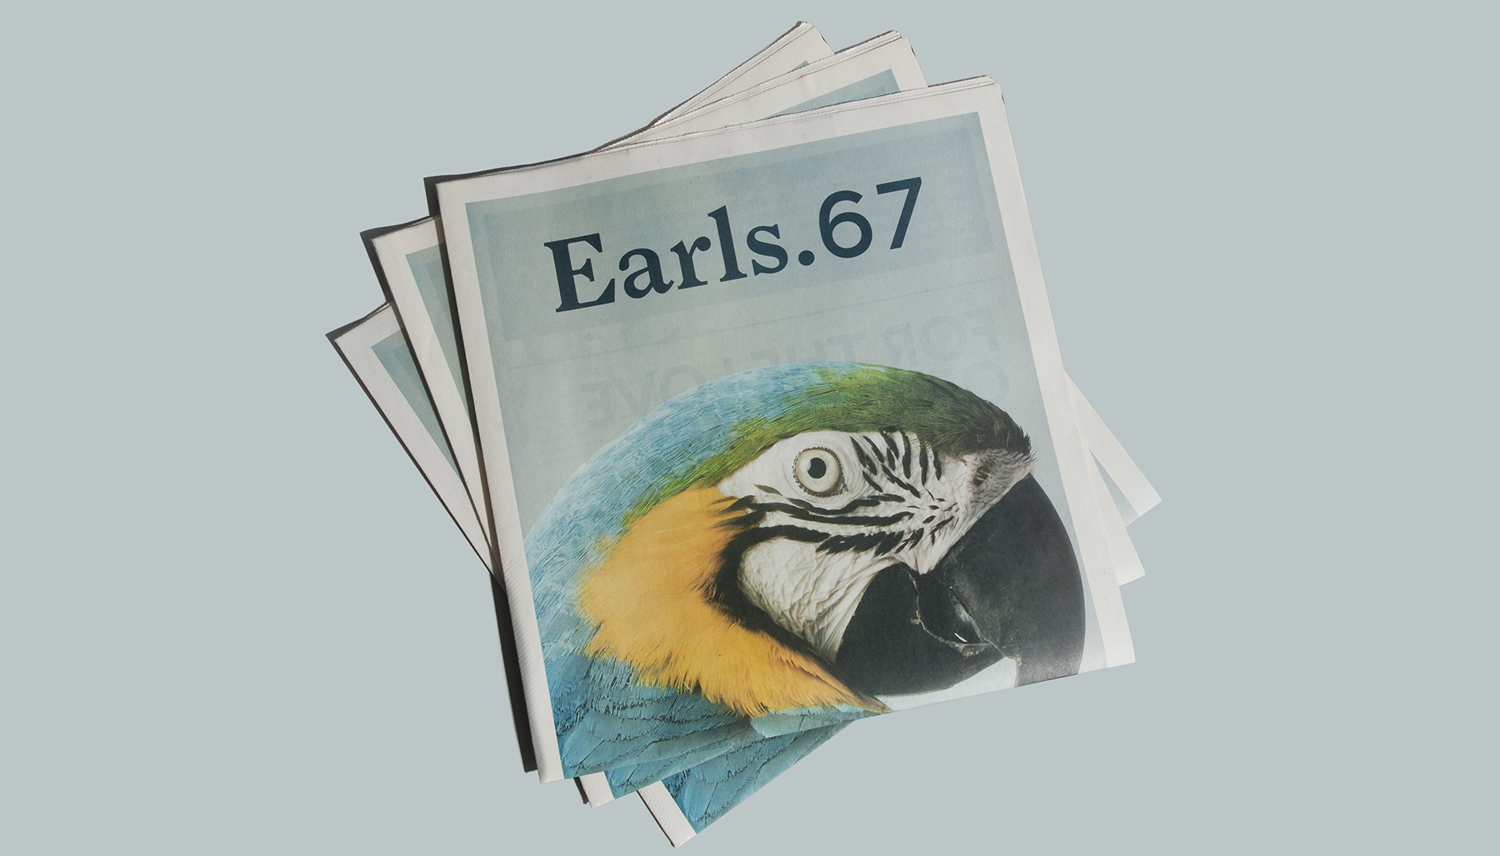 Newsprint designed by Glasfurd & Walker featuring parrot photography by Eydis Einarsdóttir for US and Canadian restaurant chain prototype Earls.67